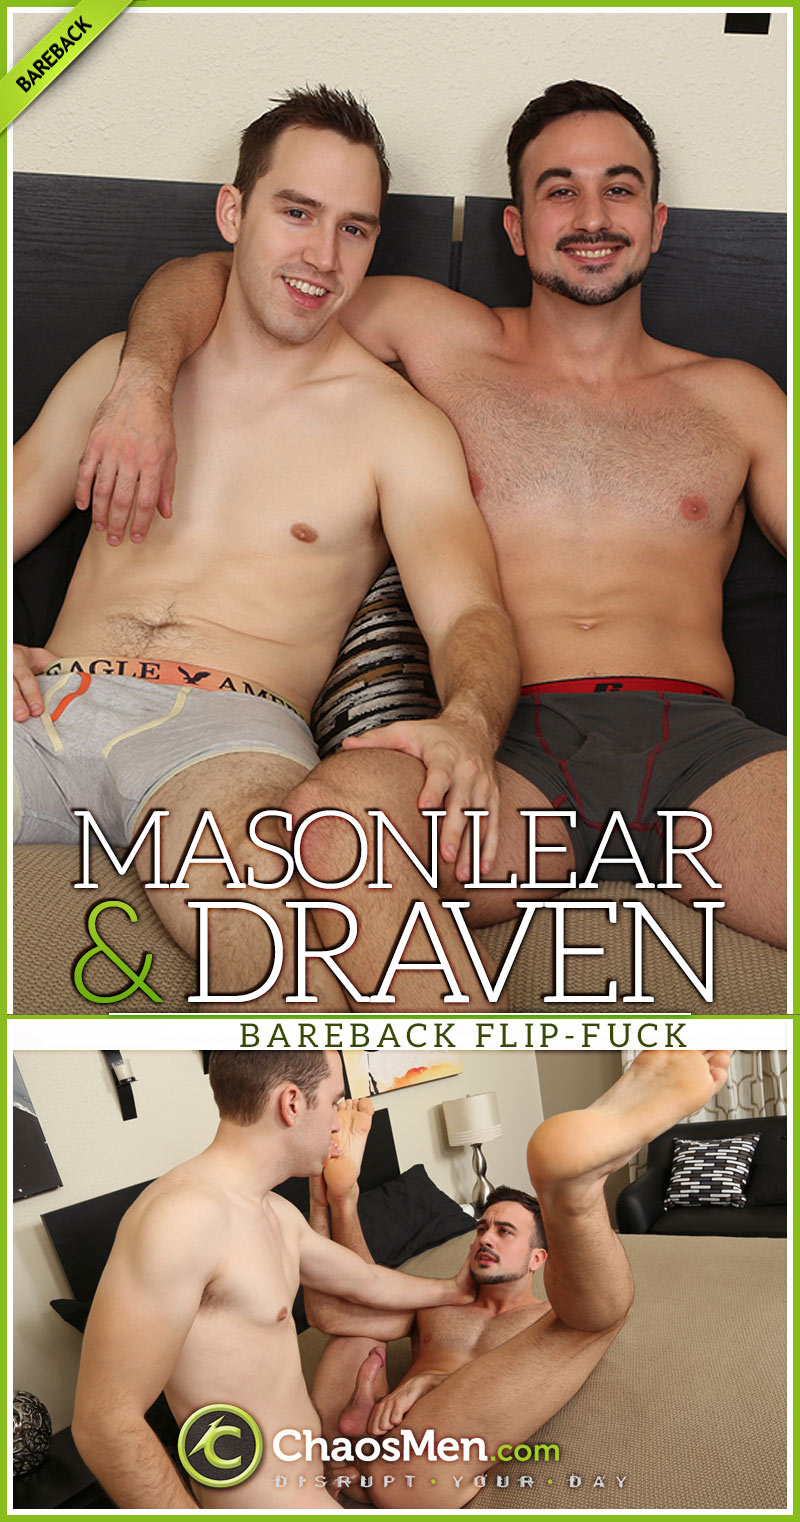 Mason Lear and Draven (Bareback Flip-Fuck) at ChaosMen